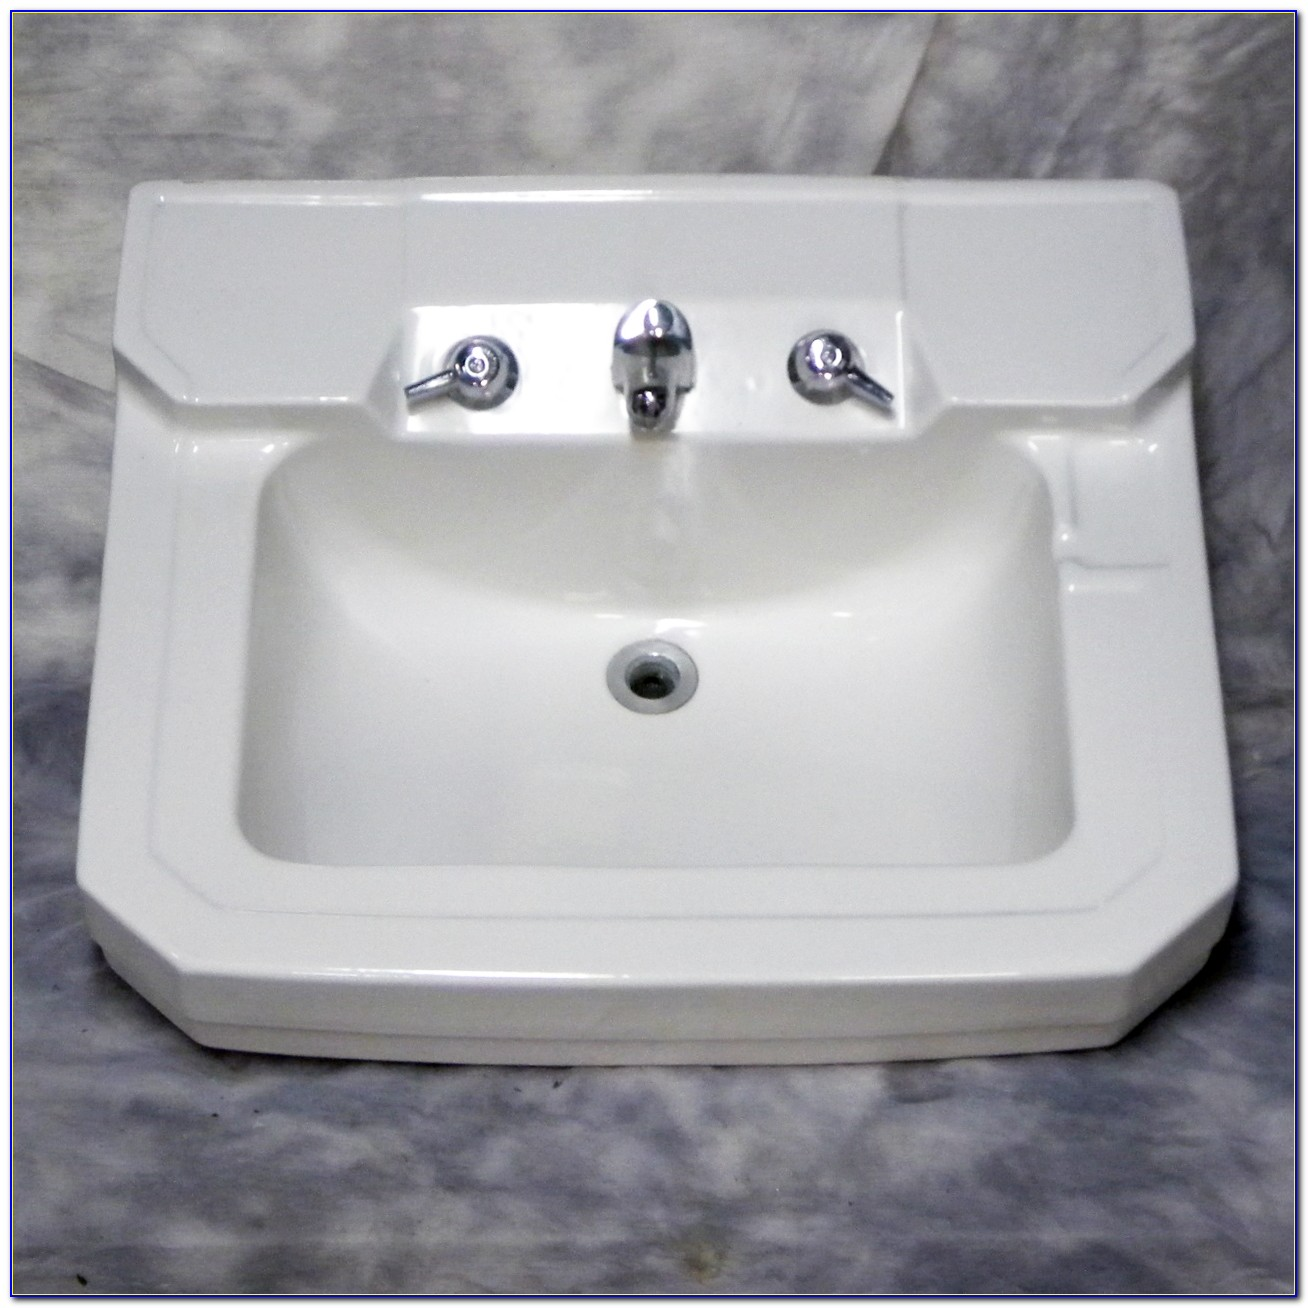 Antique Wall Hung Under Mount Sinks Throughout Sizing 1281 X 1281